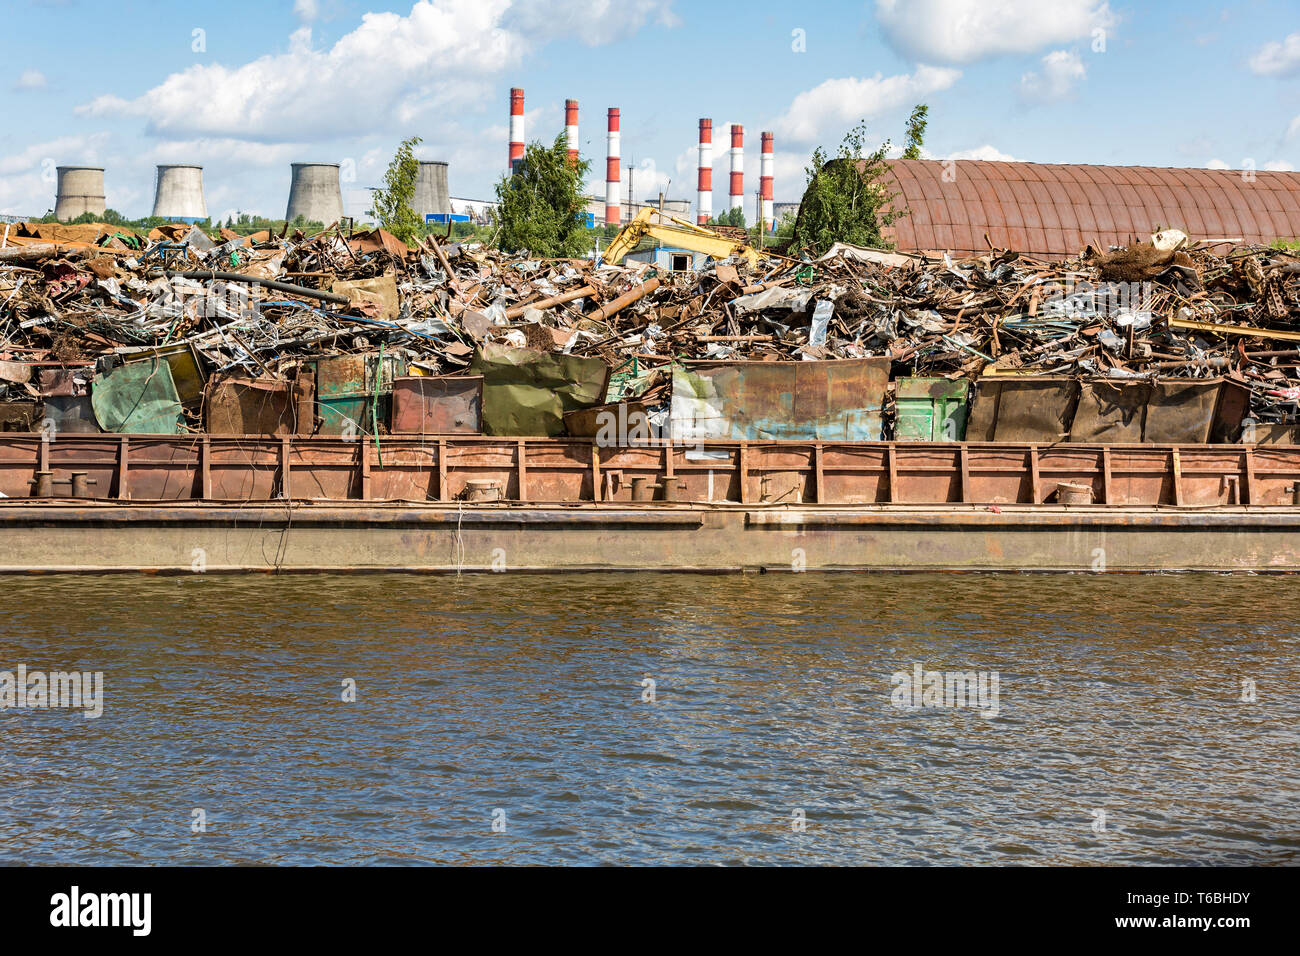 Heap of scrap metal on the river bank - Stock Image